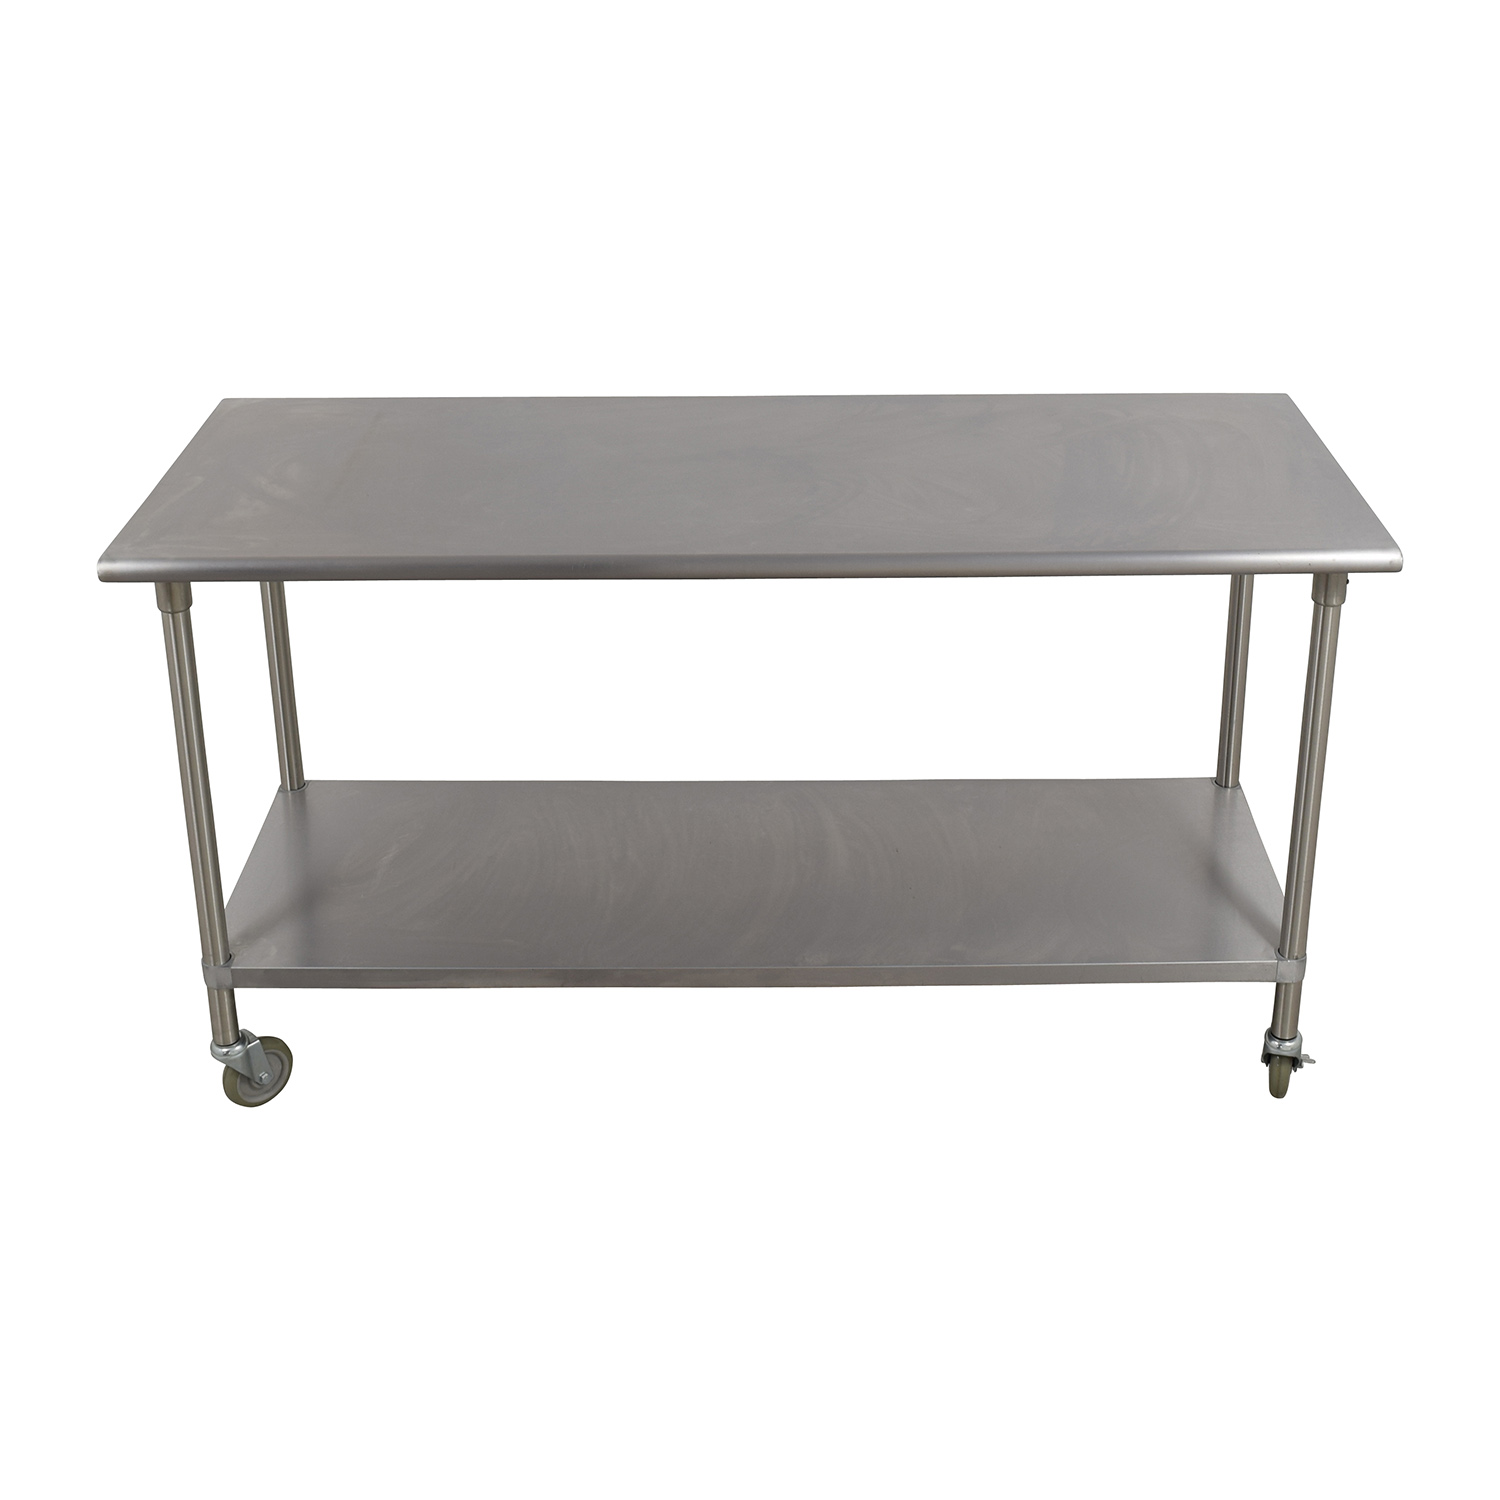 Bowery Kitchen Bowery Kitchen Stainless Steel Table dimensions